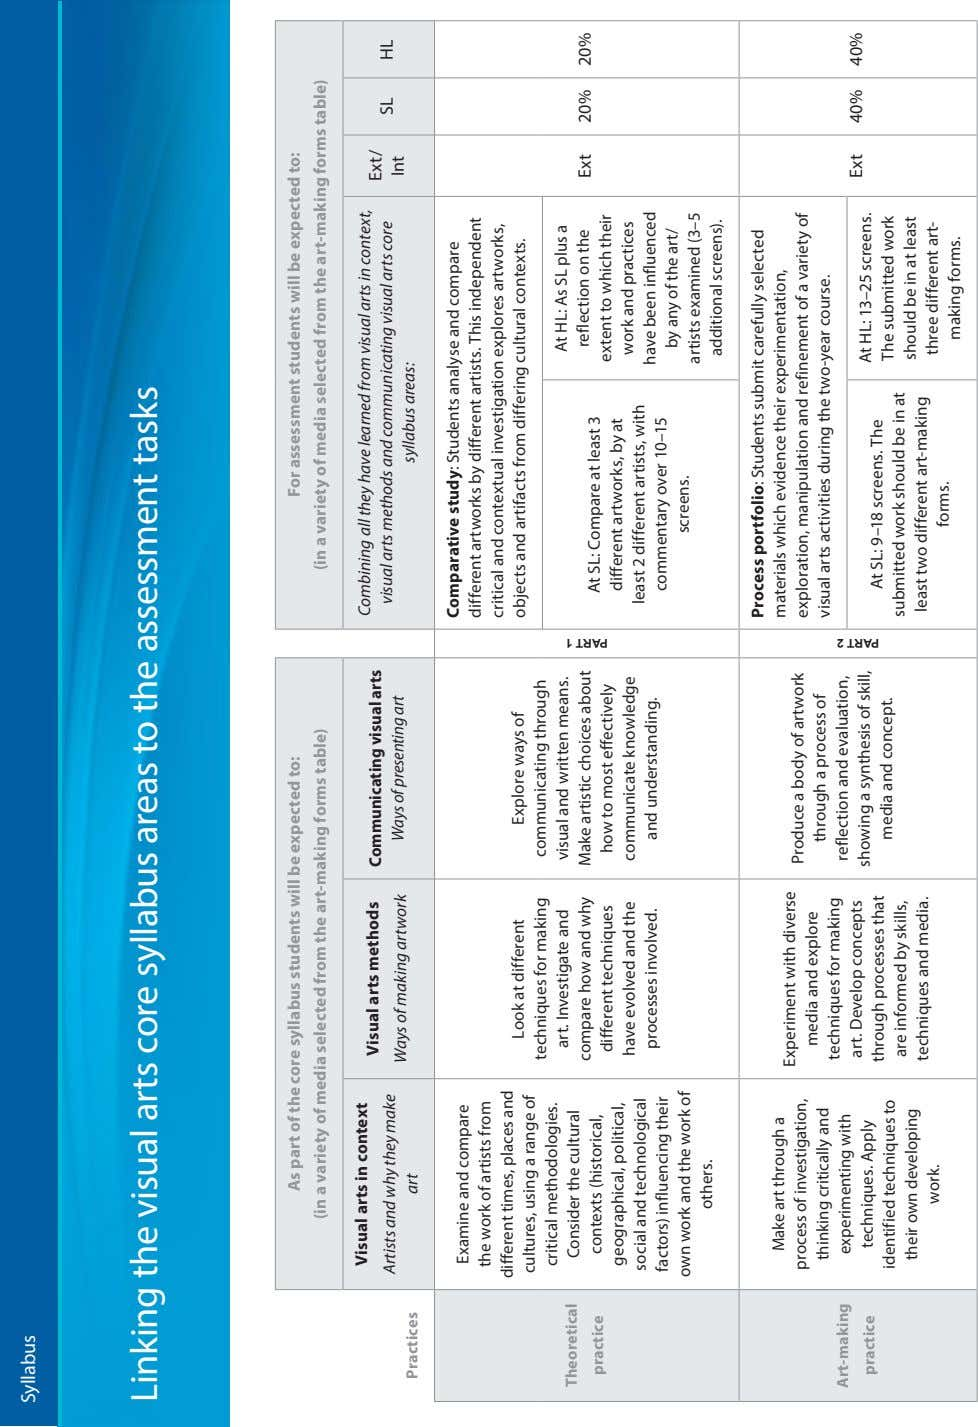 Syllabus Linking the visual arts core syllabus areas to the assessment tasks As part of